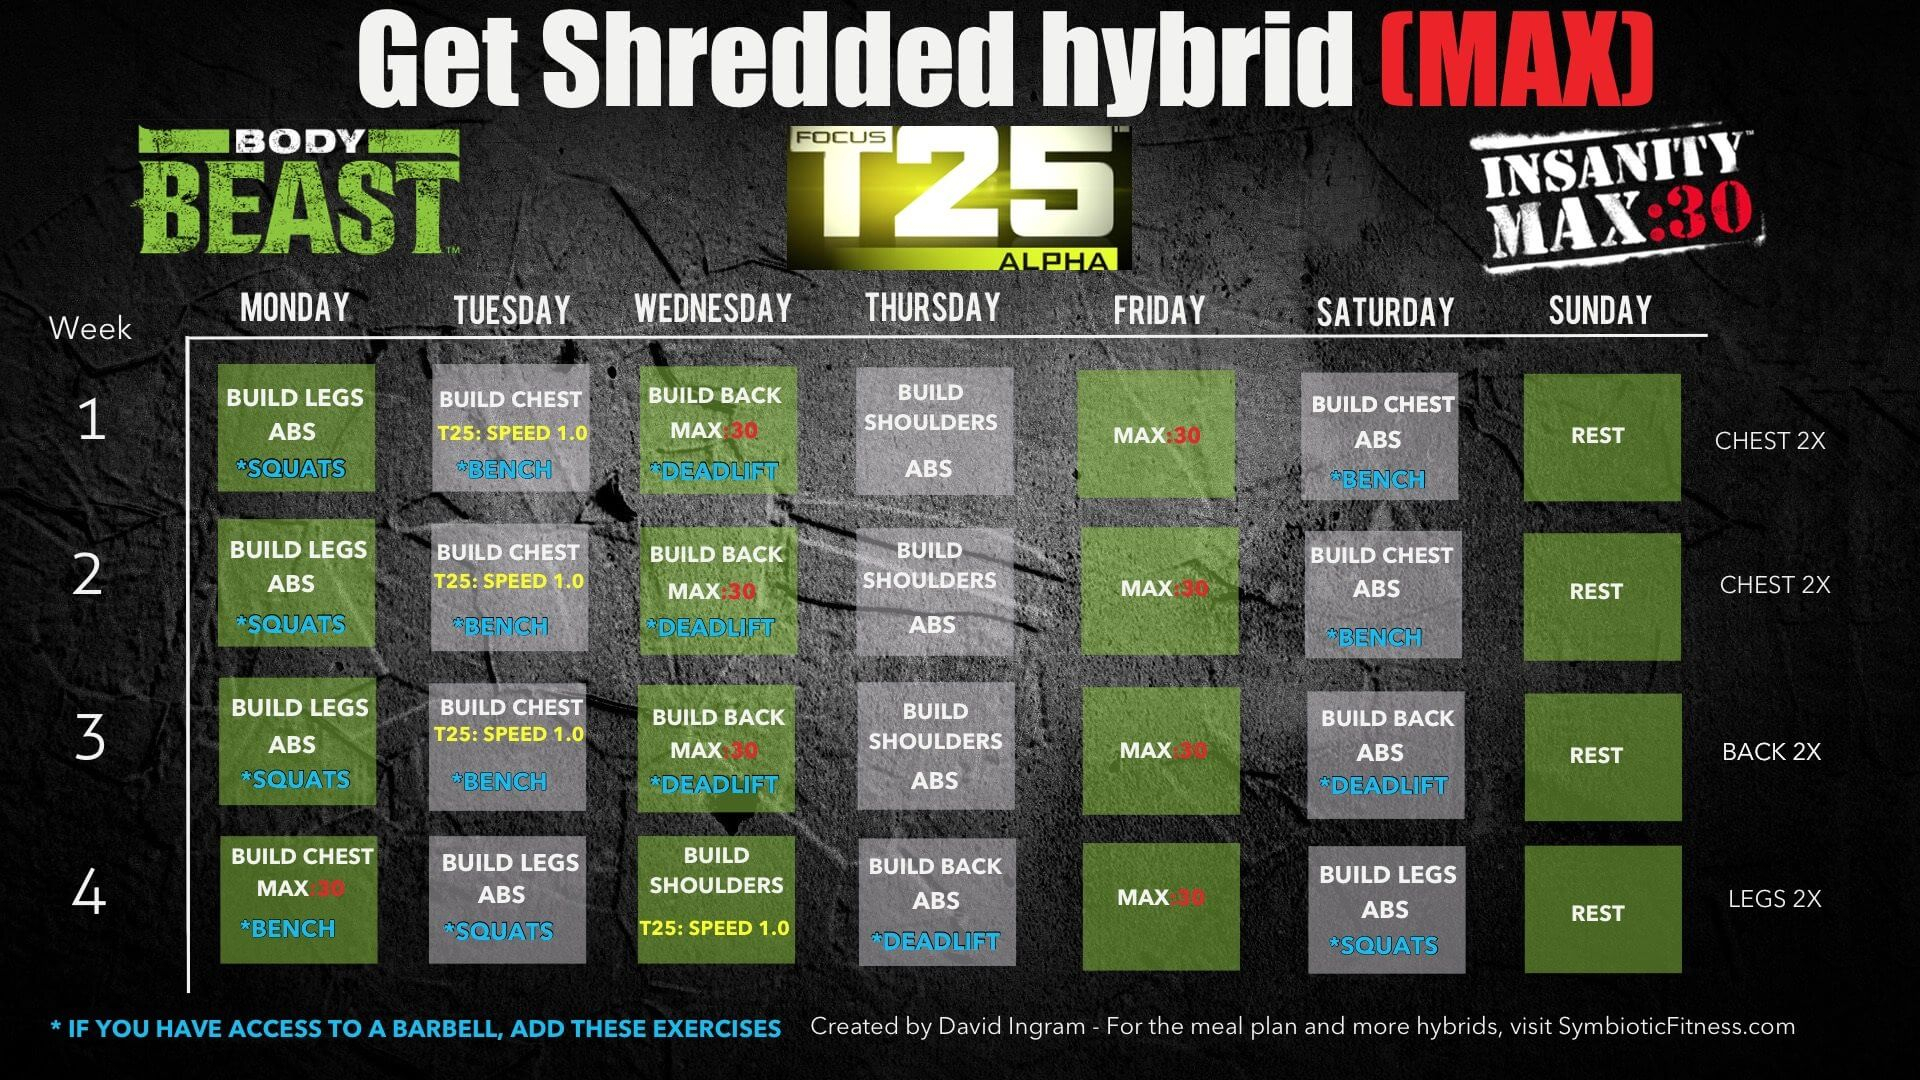 Bodybeast Hybrid With Insanity Max 30 And T25  Get Shredded in Body Beast Hybrid